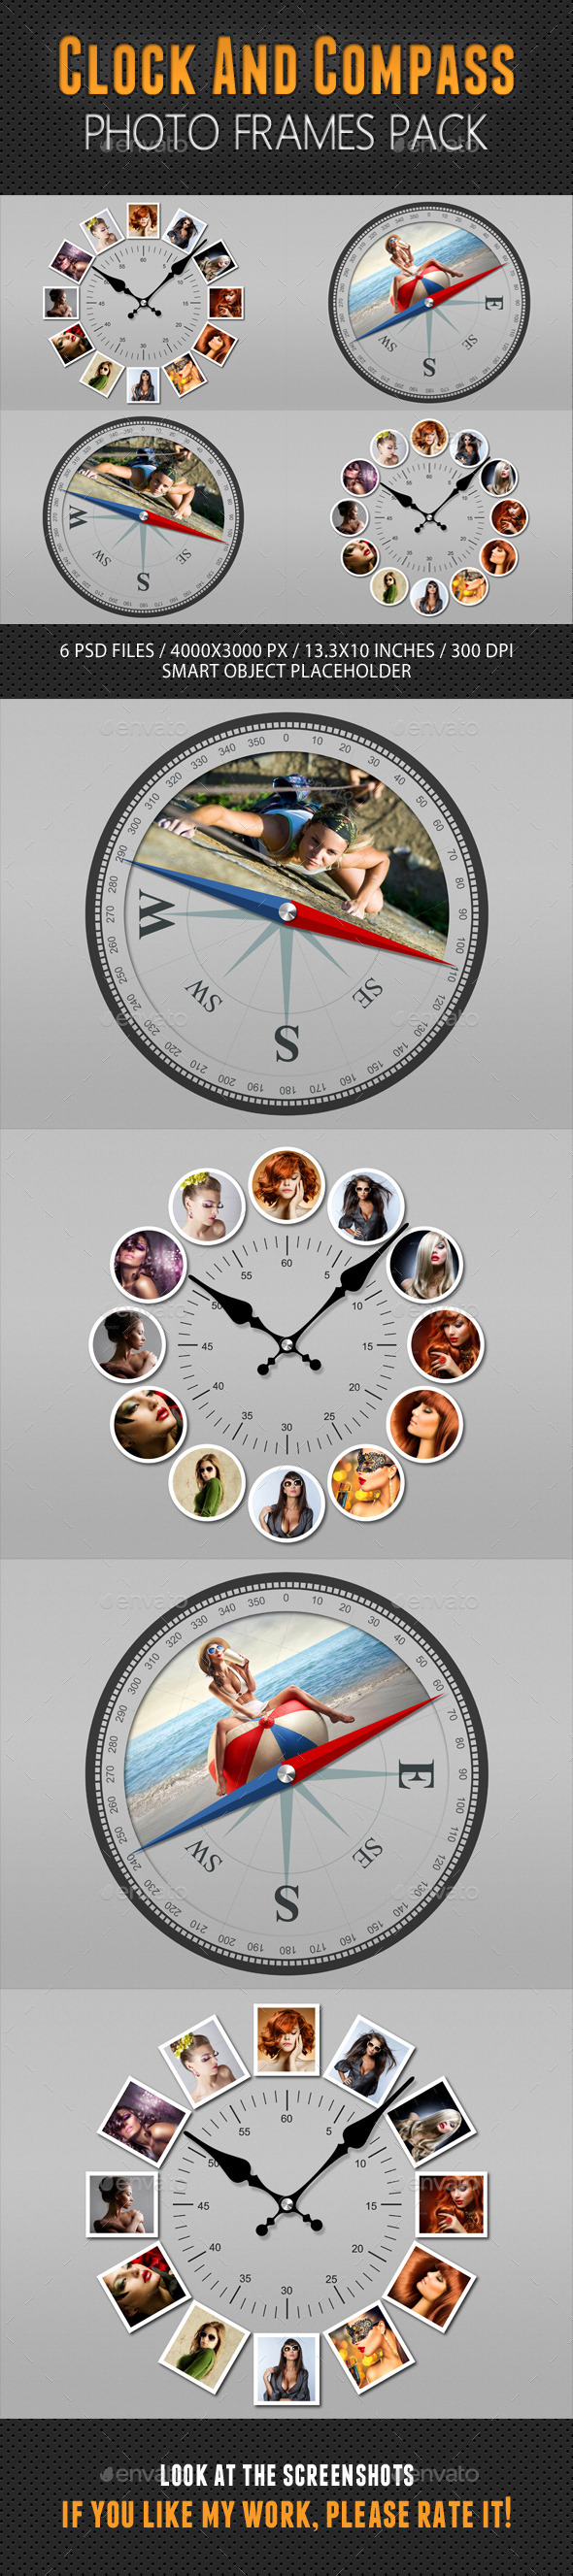 GraphicRiver Clock And Compass Photo Frames Pack 10969171